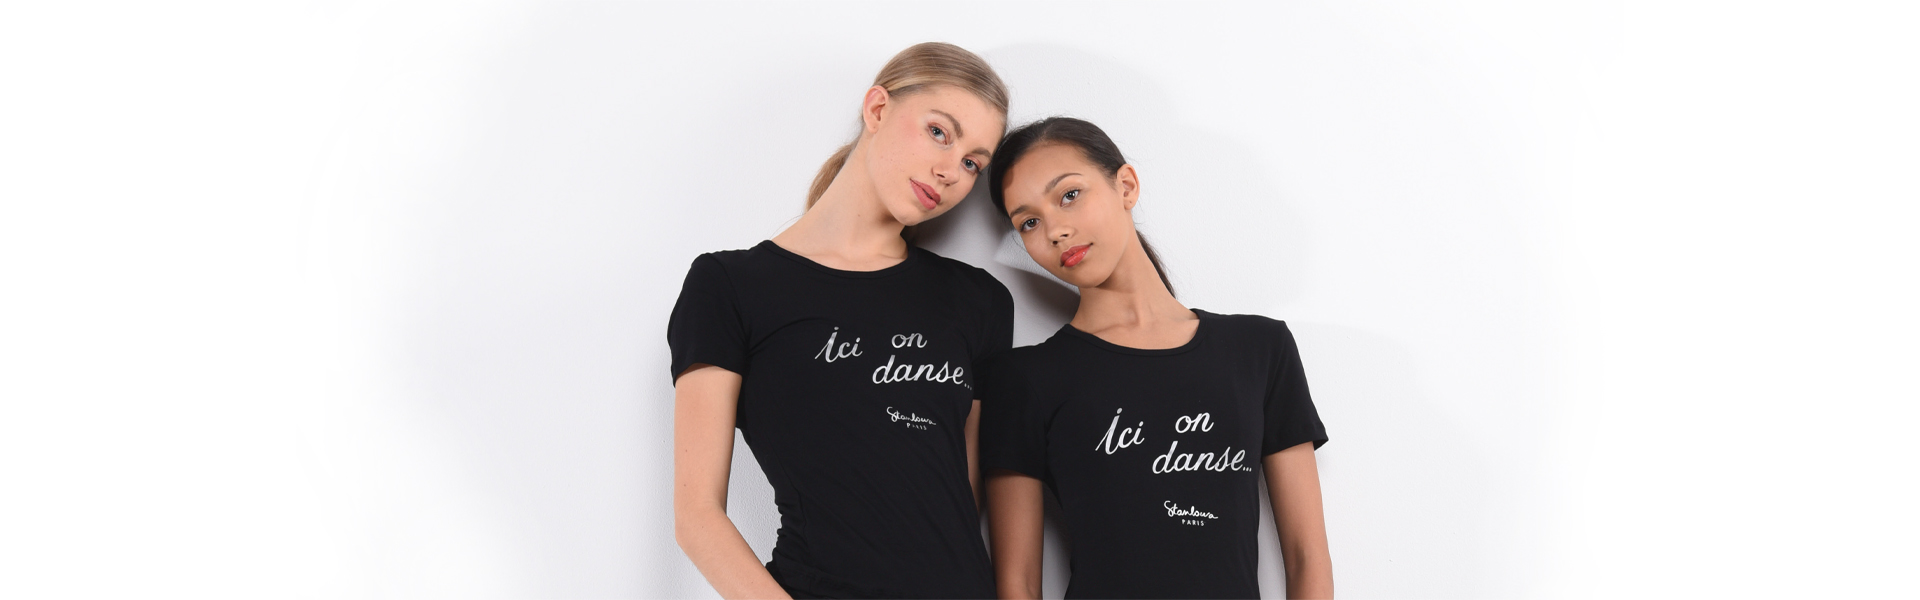 Ici on danse